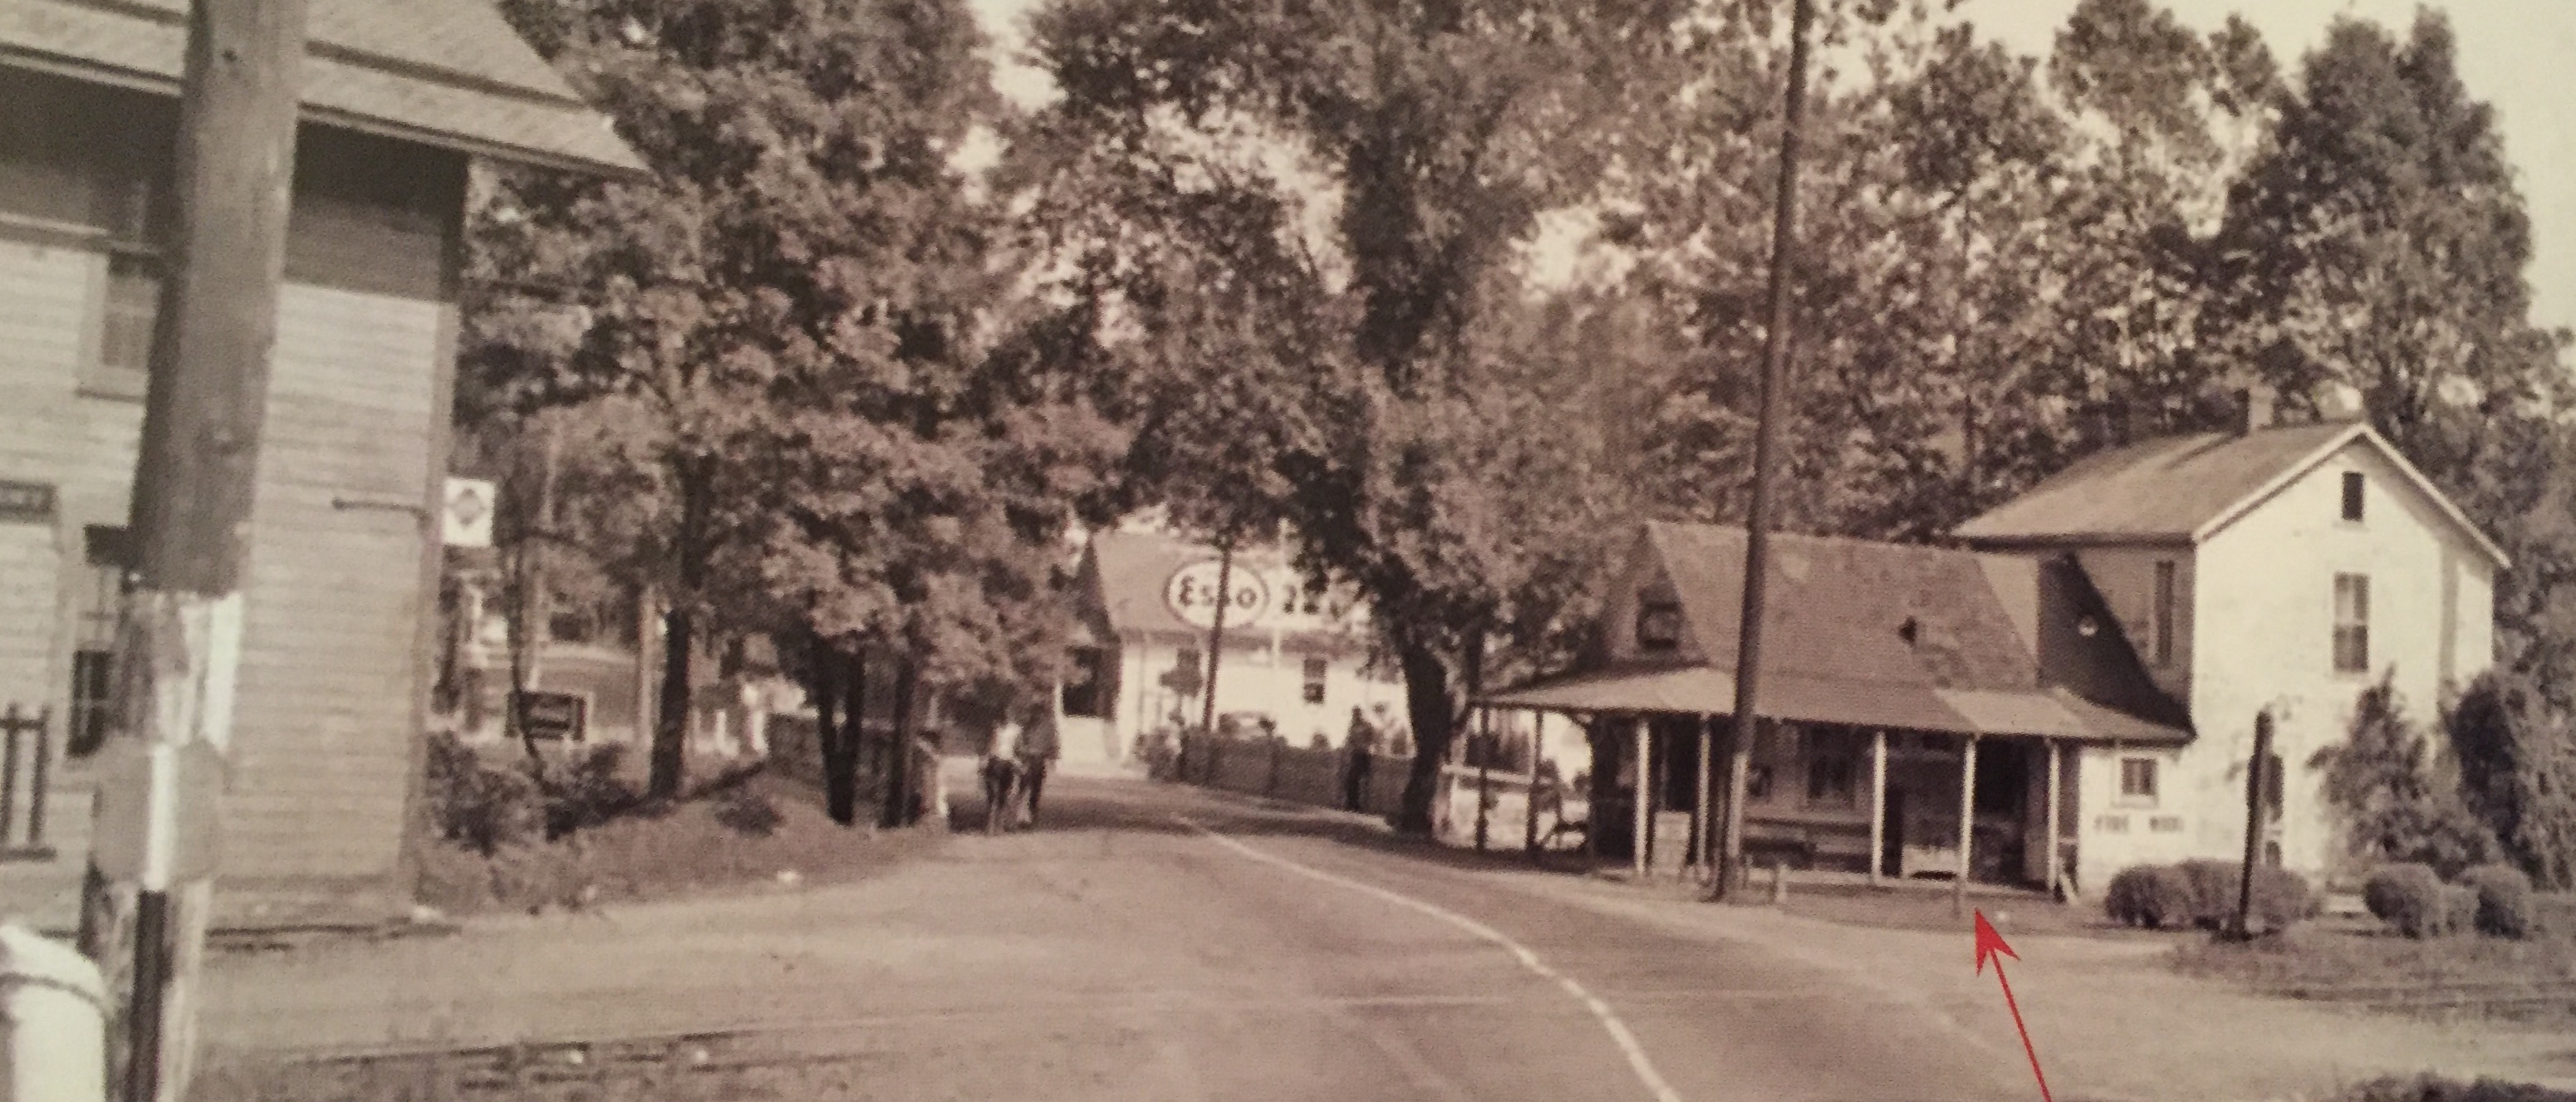 markers store 1938